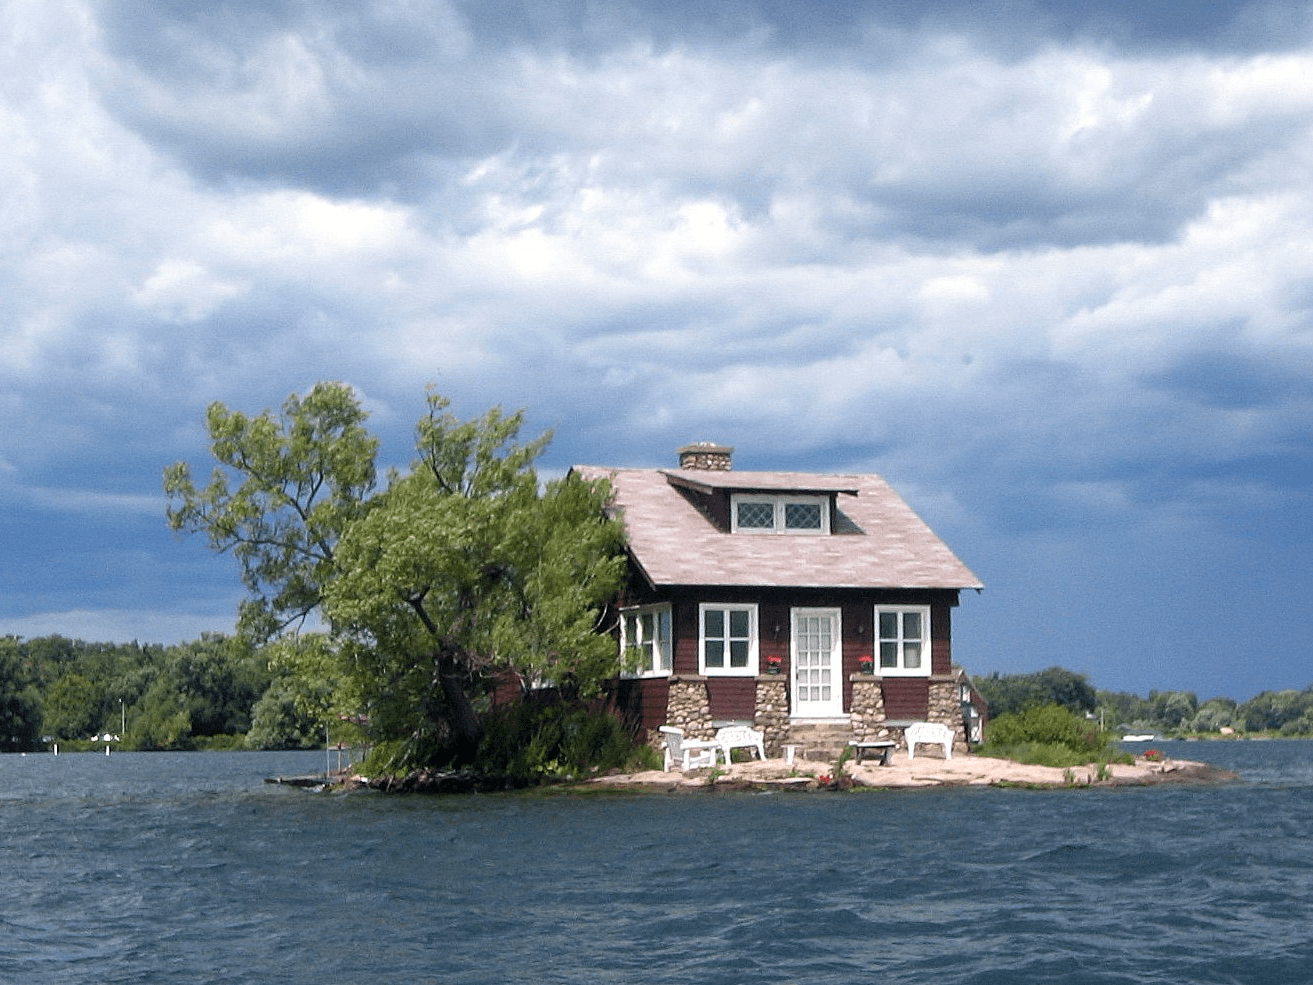 "Similarly, the island known as ""Just Room Enough Island"" is one of the famous Thousand Islands that straddle the US-Canada border in the Saint Lawrence River. There are a few lawn chairs out front on the family's tiny beach."